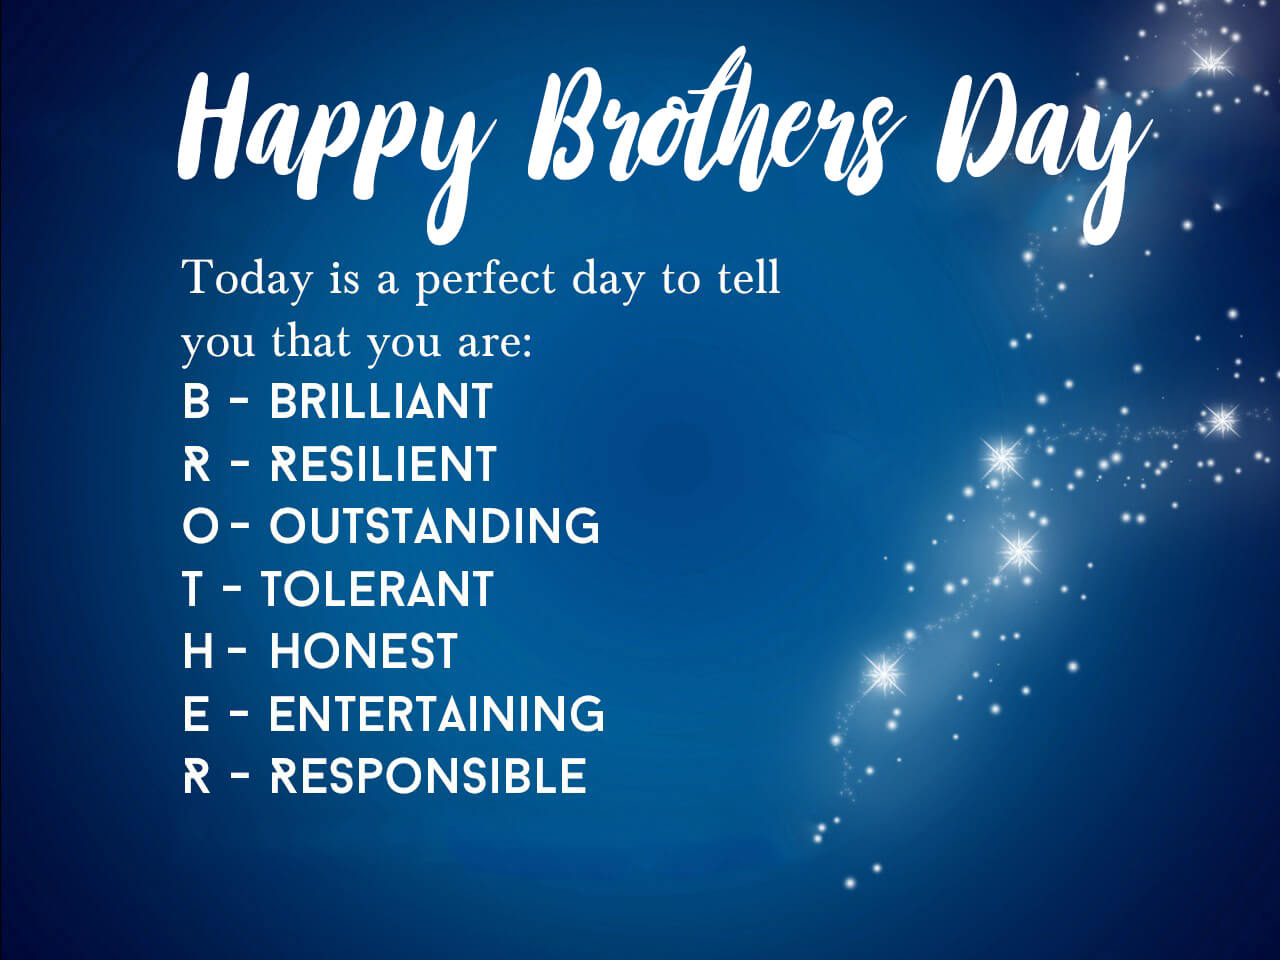 happy brothers day wishes greetings expansion text image